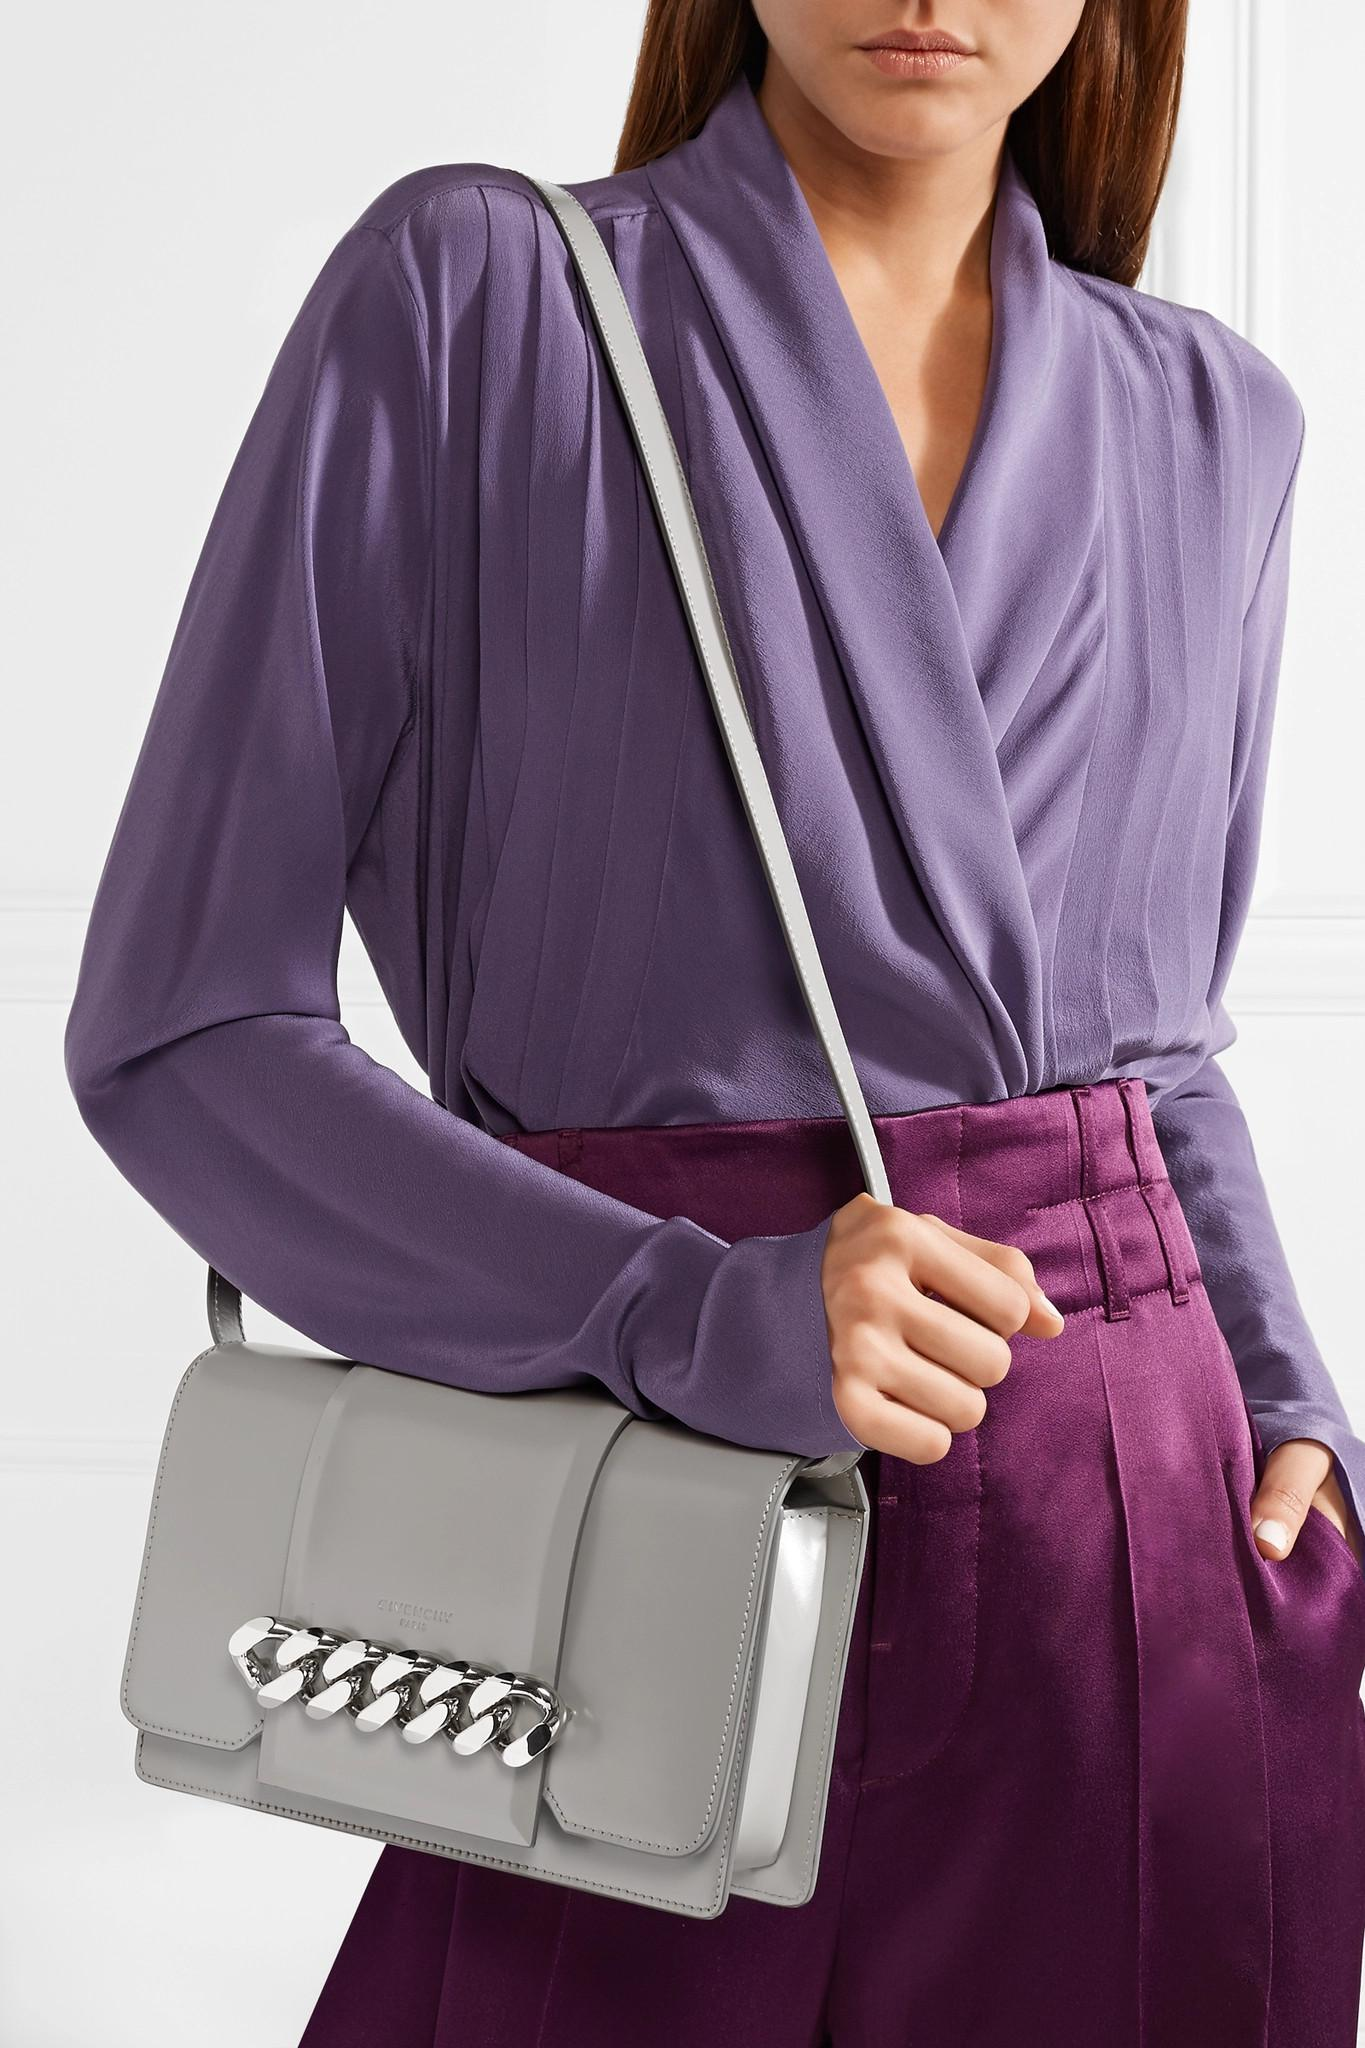 d844a48c9c Givenchy - Gray Infinity Chain-trimmed Leather Shoulder Bag - Lyst. View  fullscreen